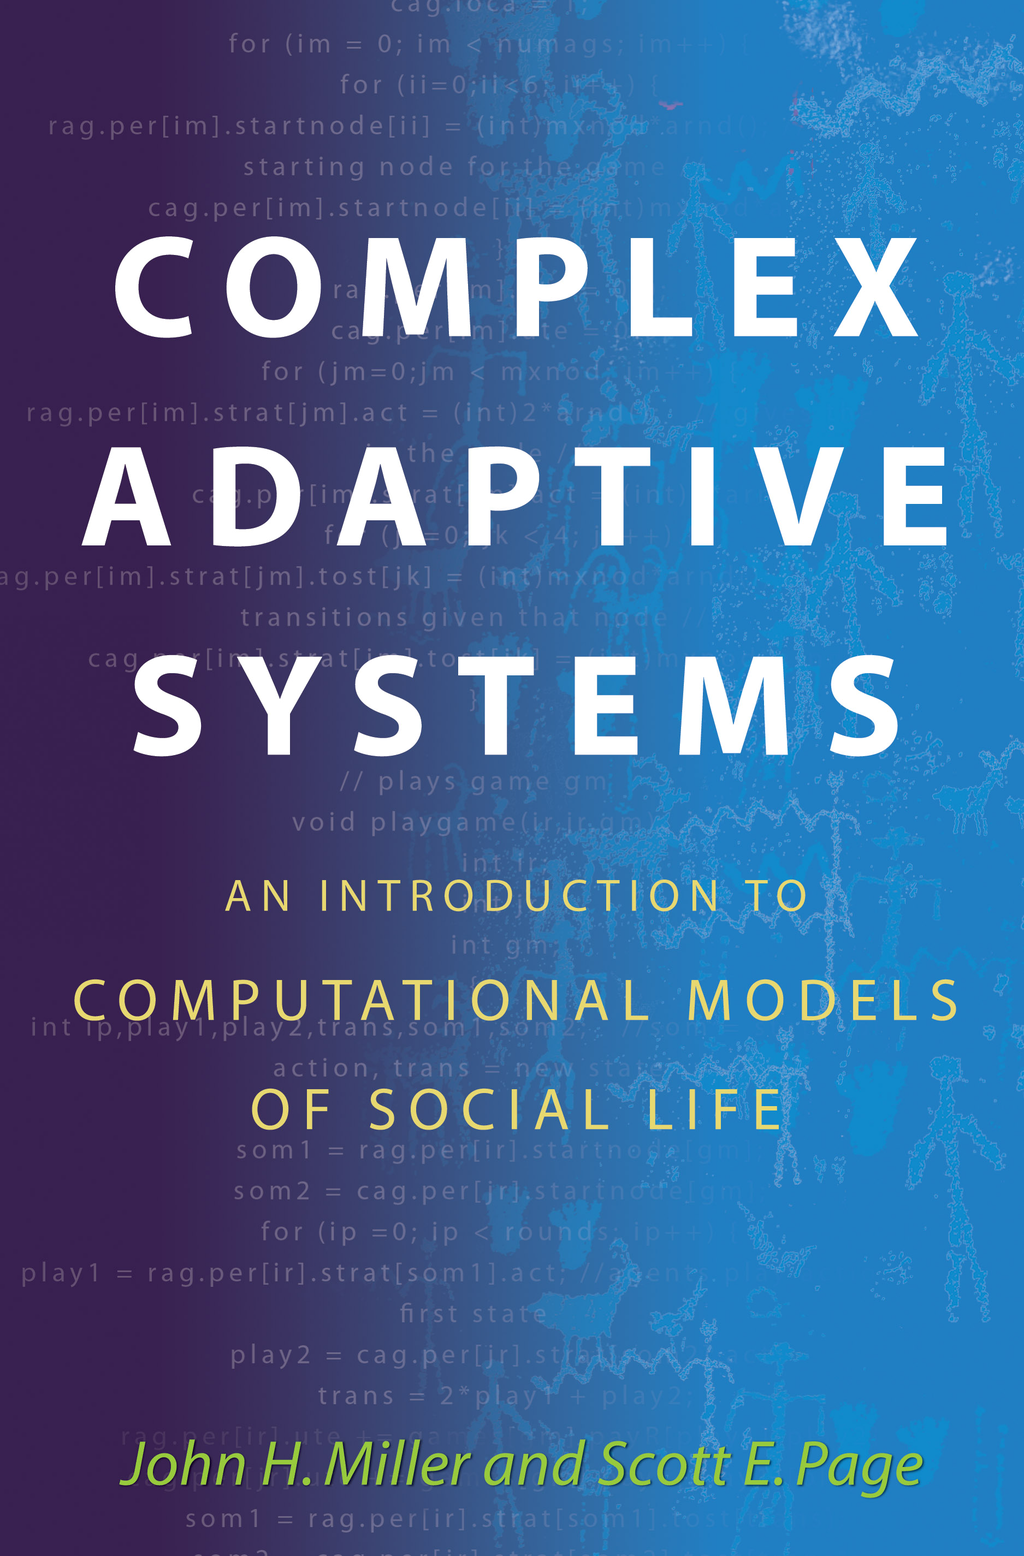 Complex Adaptive Systems: An Introduction to Computational Models of Social Life An Introduction to Computational Models of Social Life